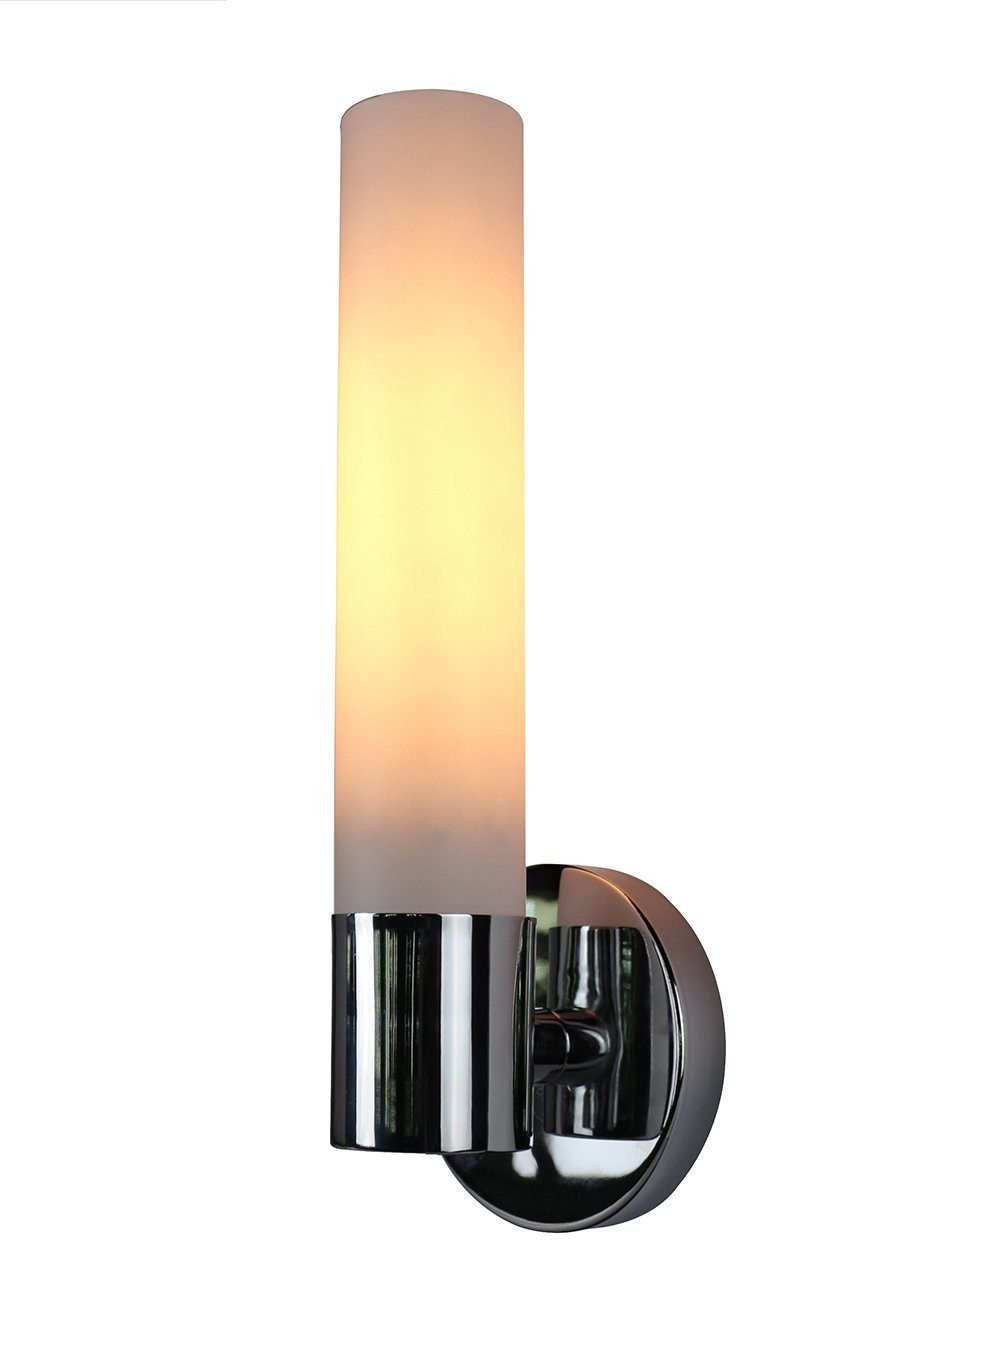 Enzo One-Light Wall Sconce Lamp with Frosted Glass Shade - 4 Finishes, Hardwired